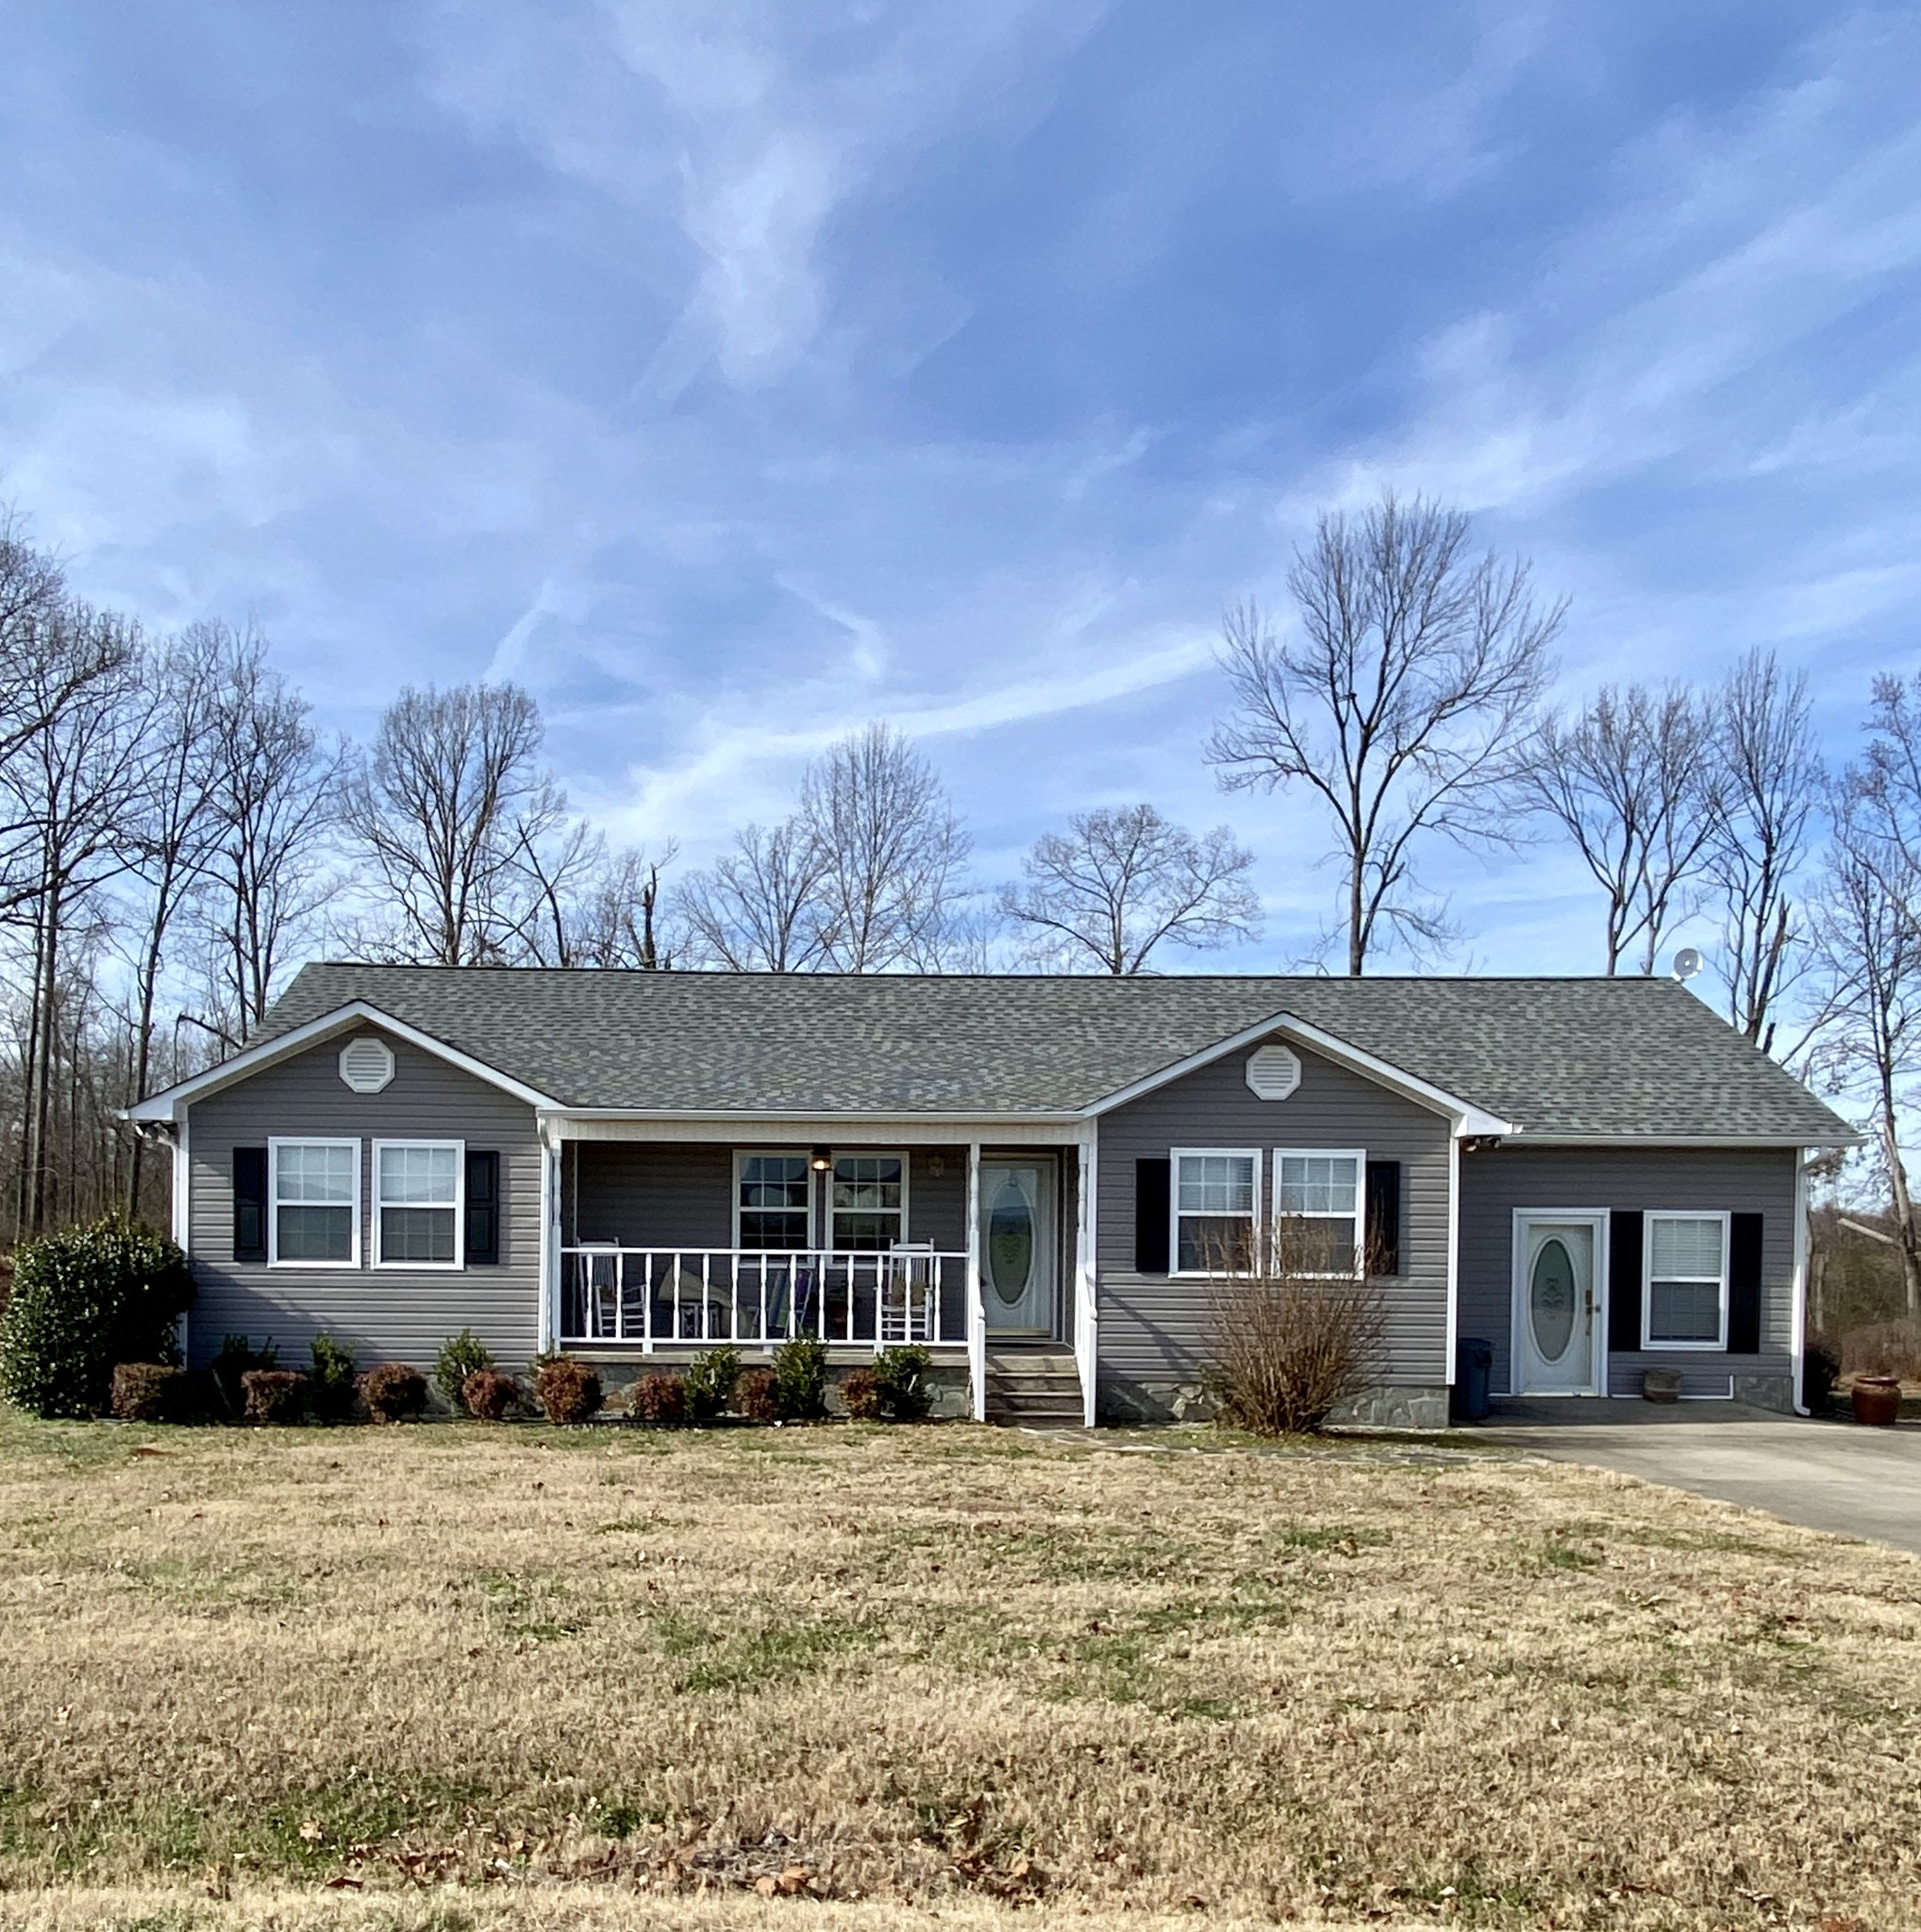 971 Sherrill Rd, Decherd, TN 37324 - Decherd, TN real estate listing